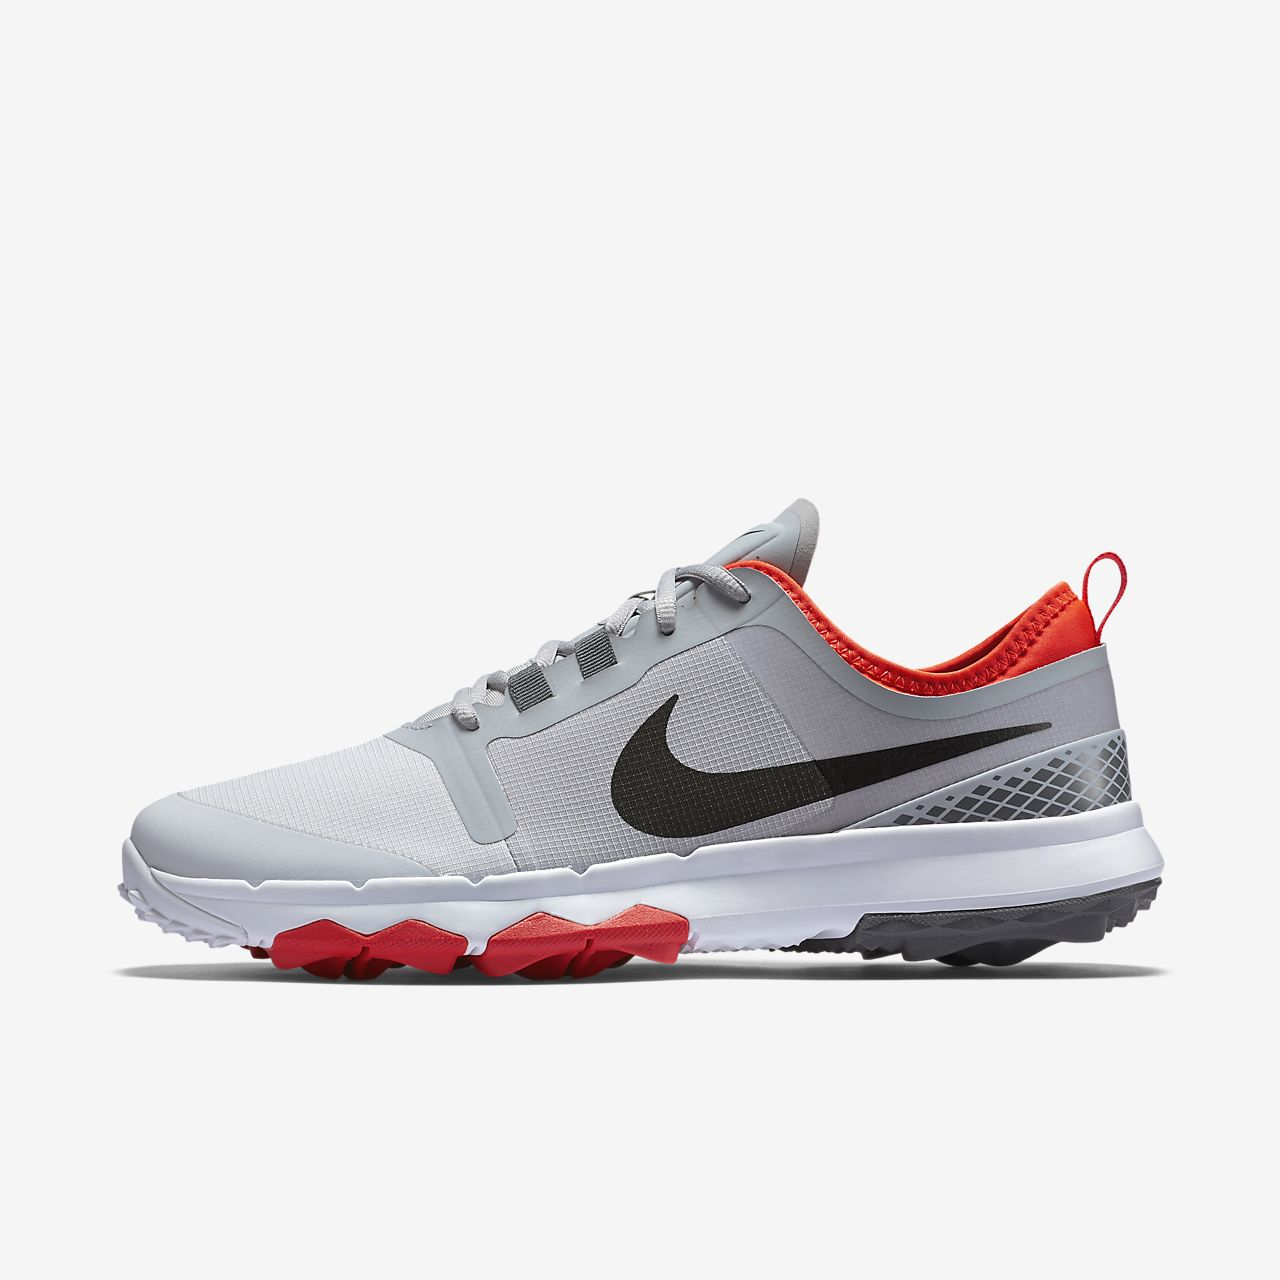 Nike F Impact Golf Shoe Ladies